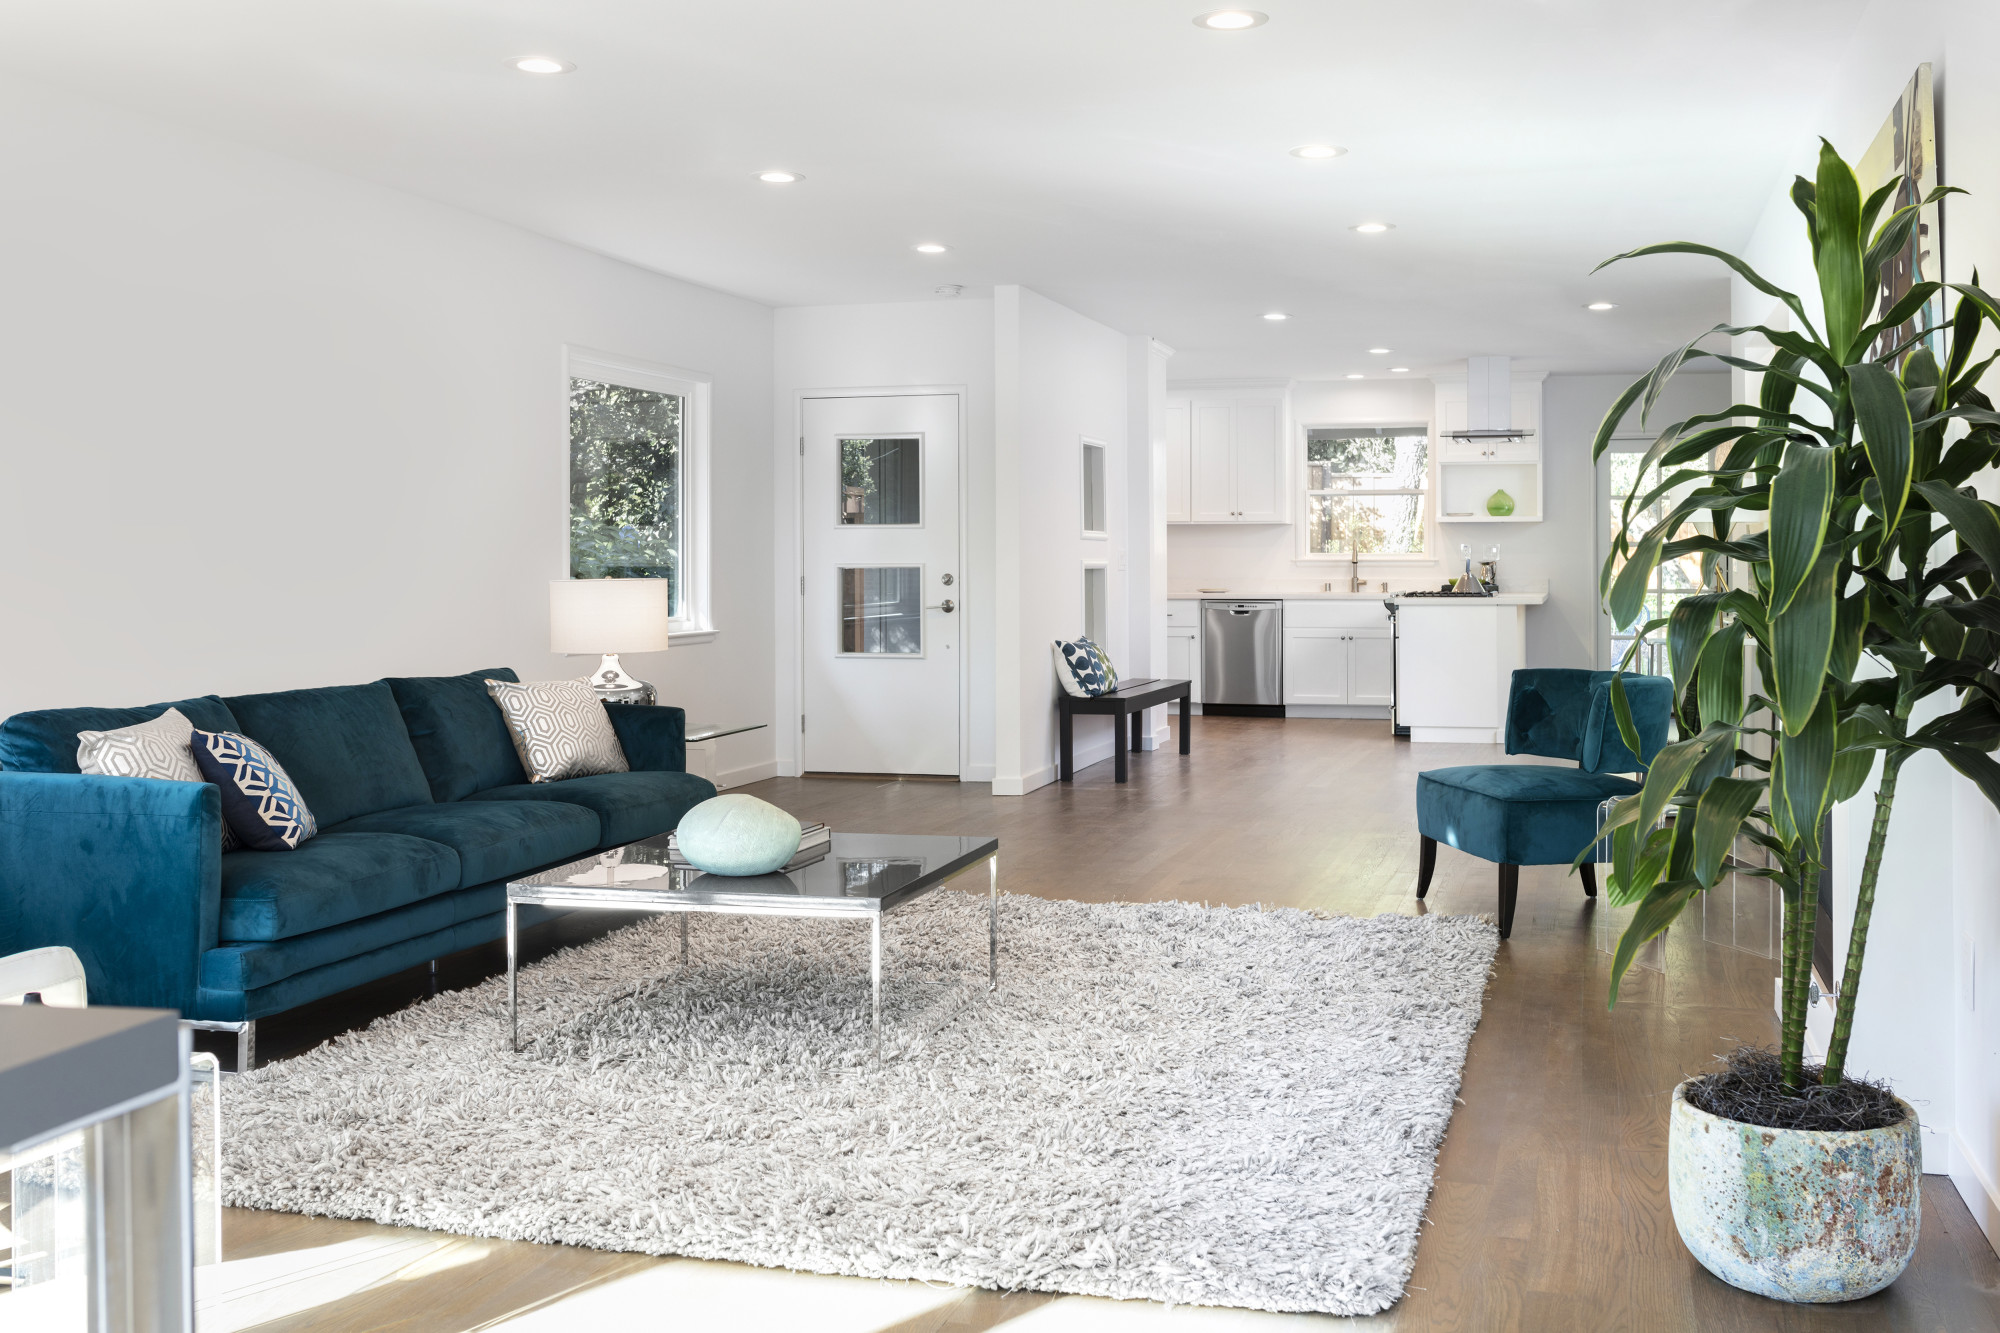 Extra, Extra - Home for Sale! 3 Home Staging Tips to Get People Interested